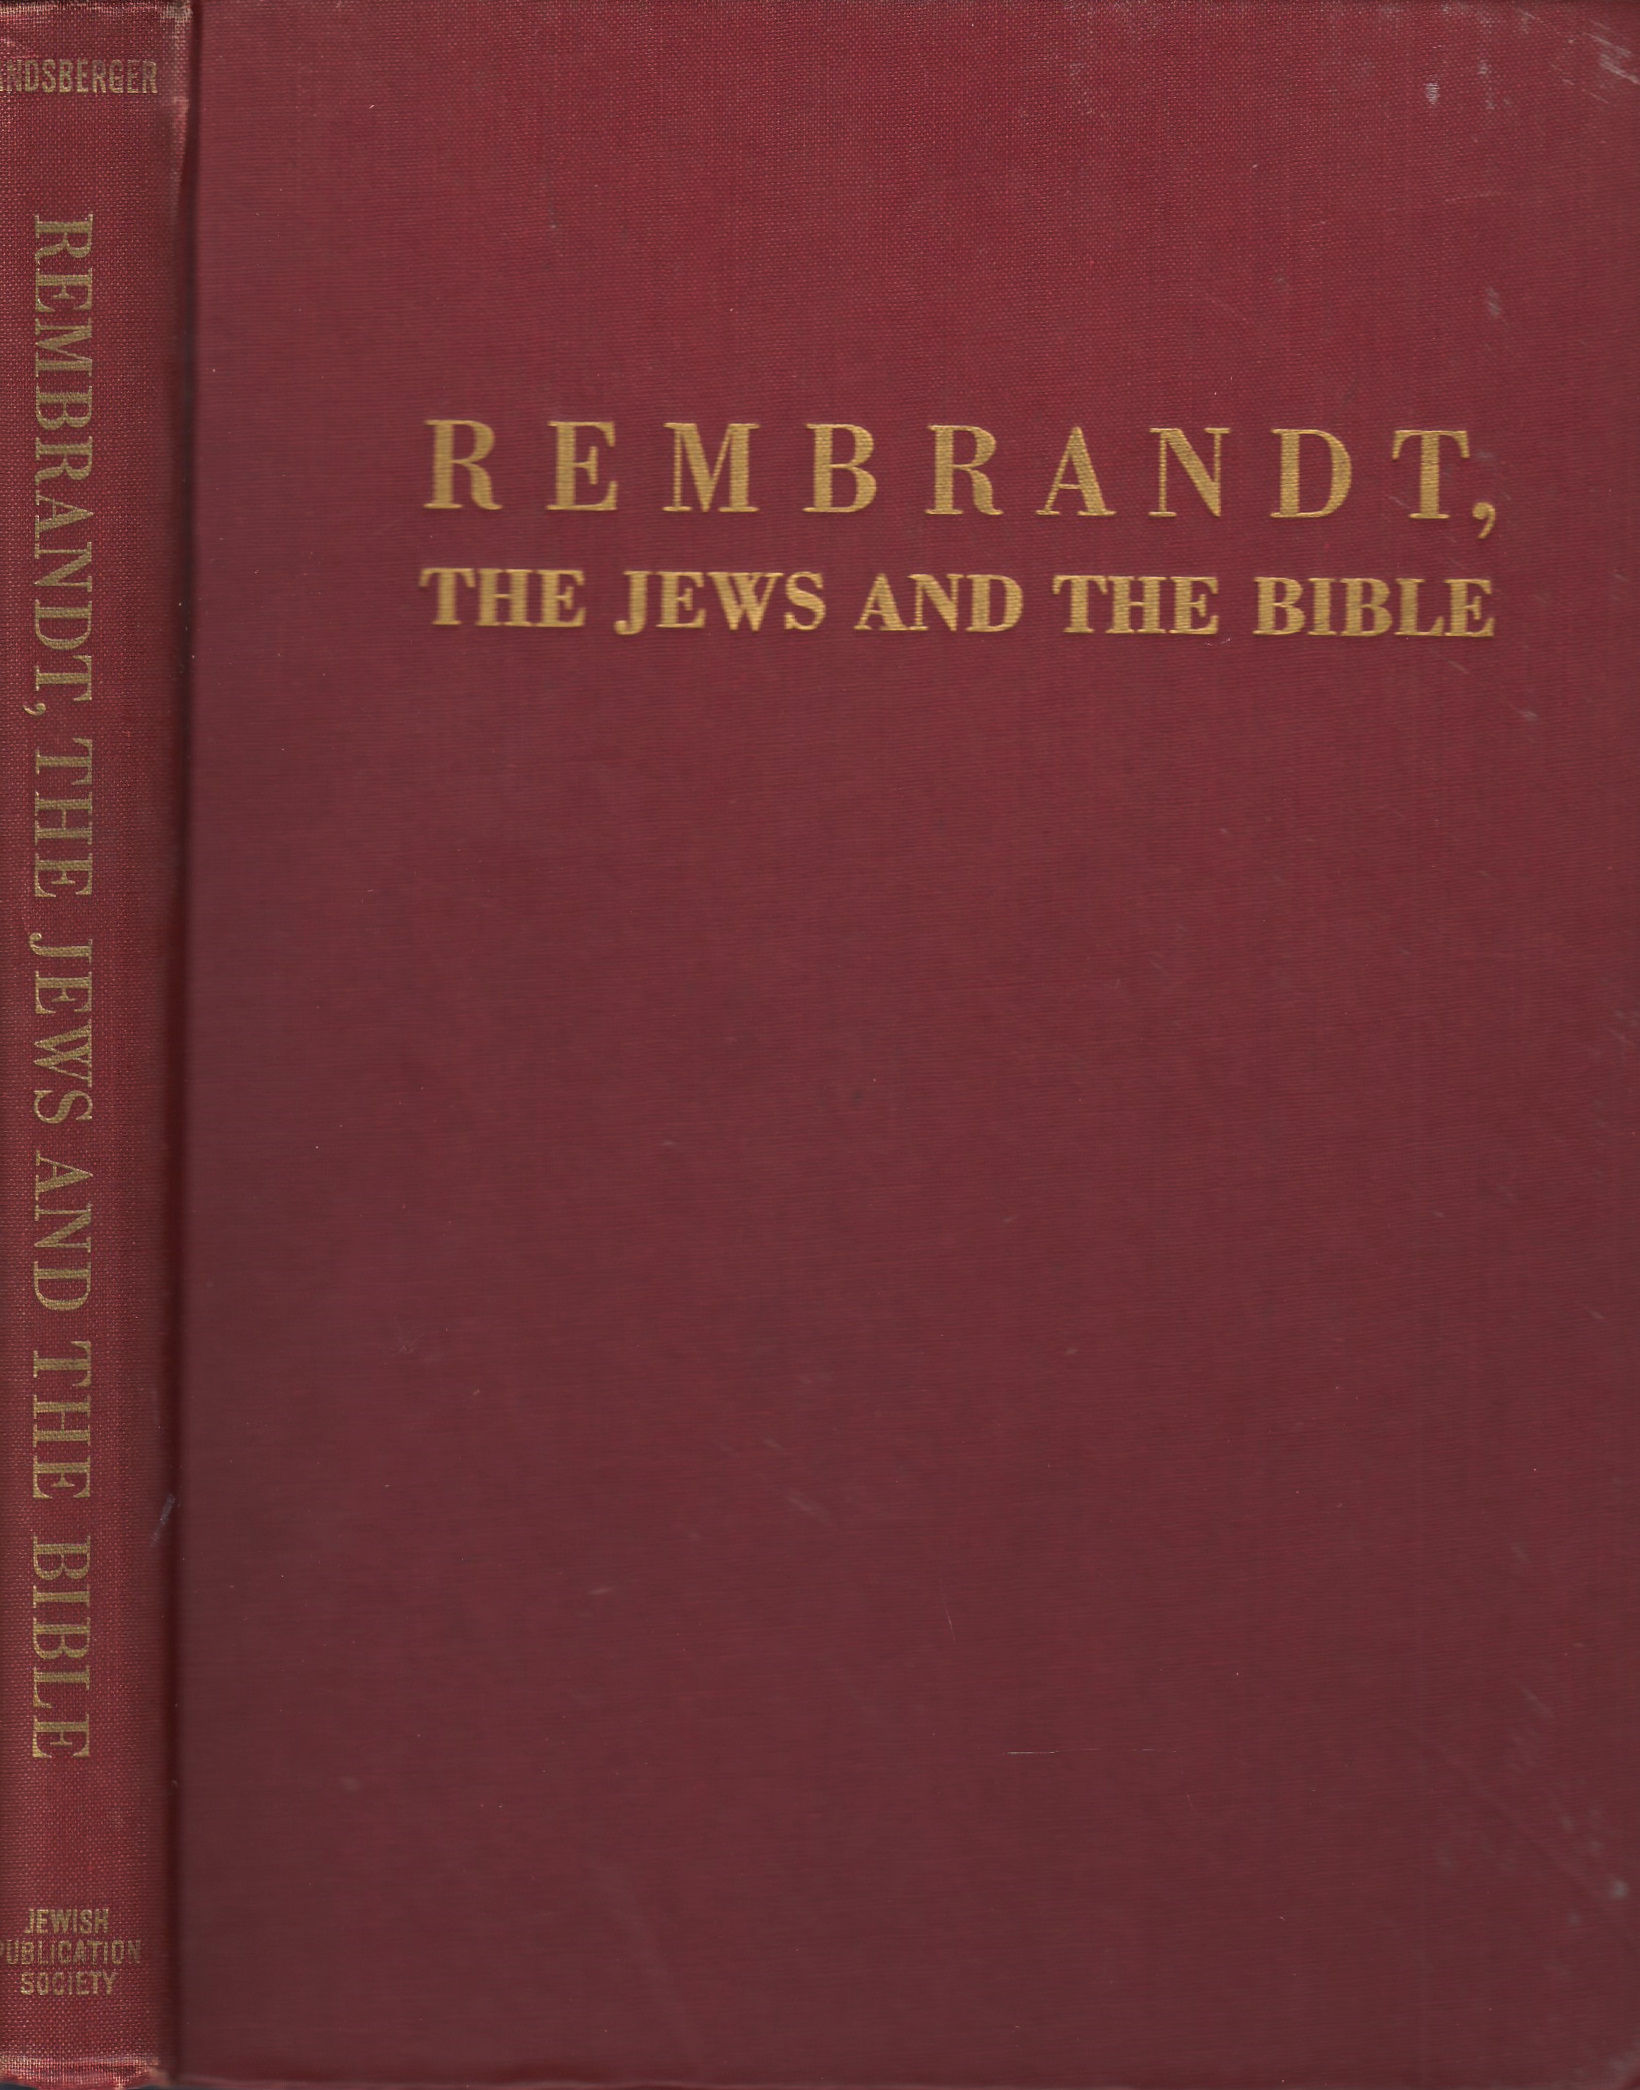 the new american bible rembrandt edition